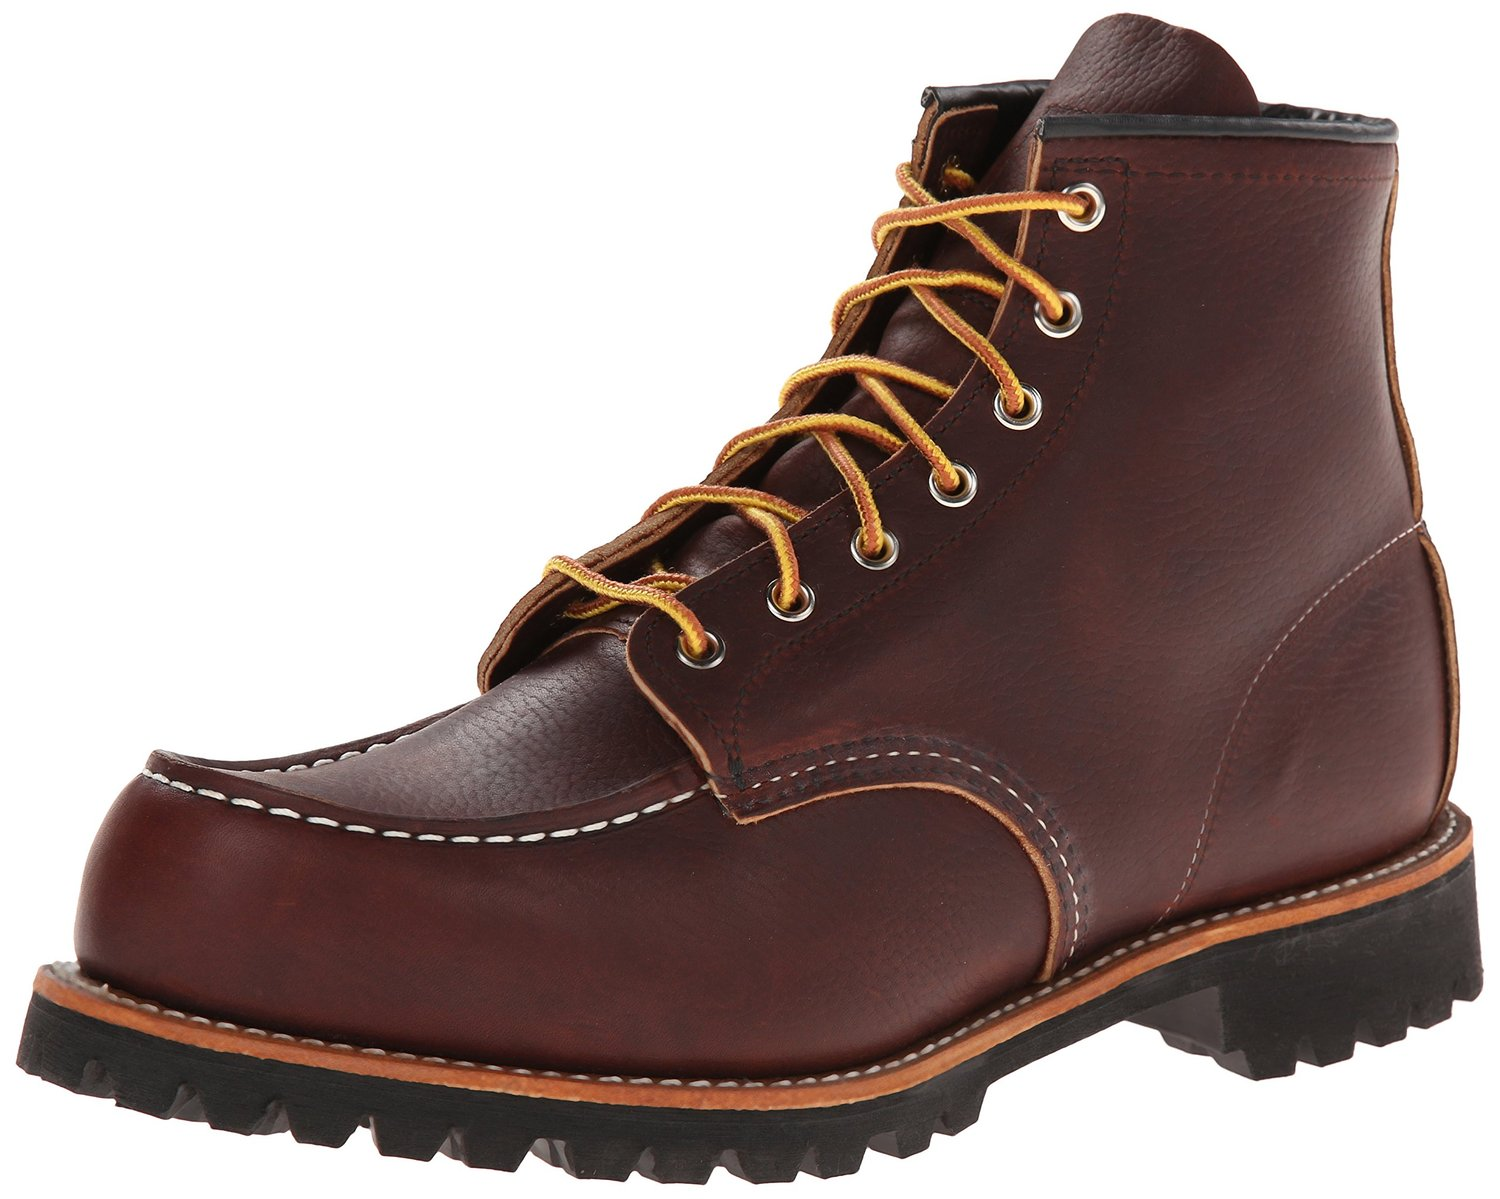 Red Wing Boots On Sale TLXW18ez